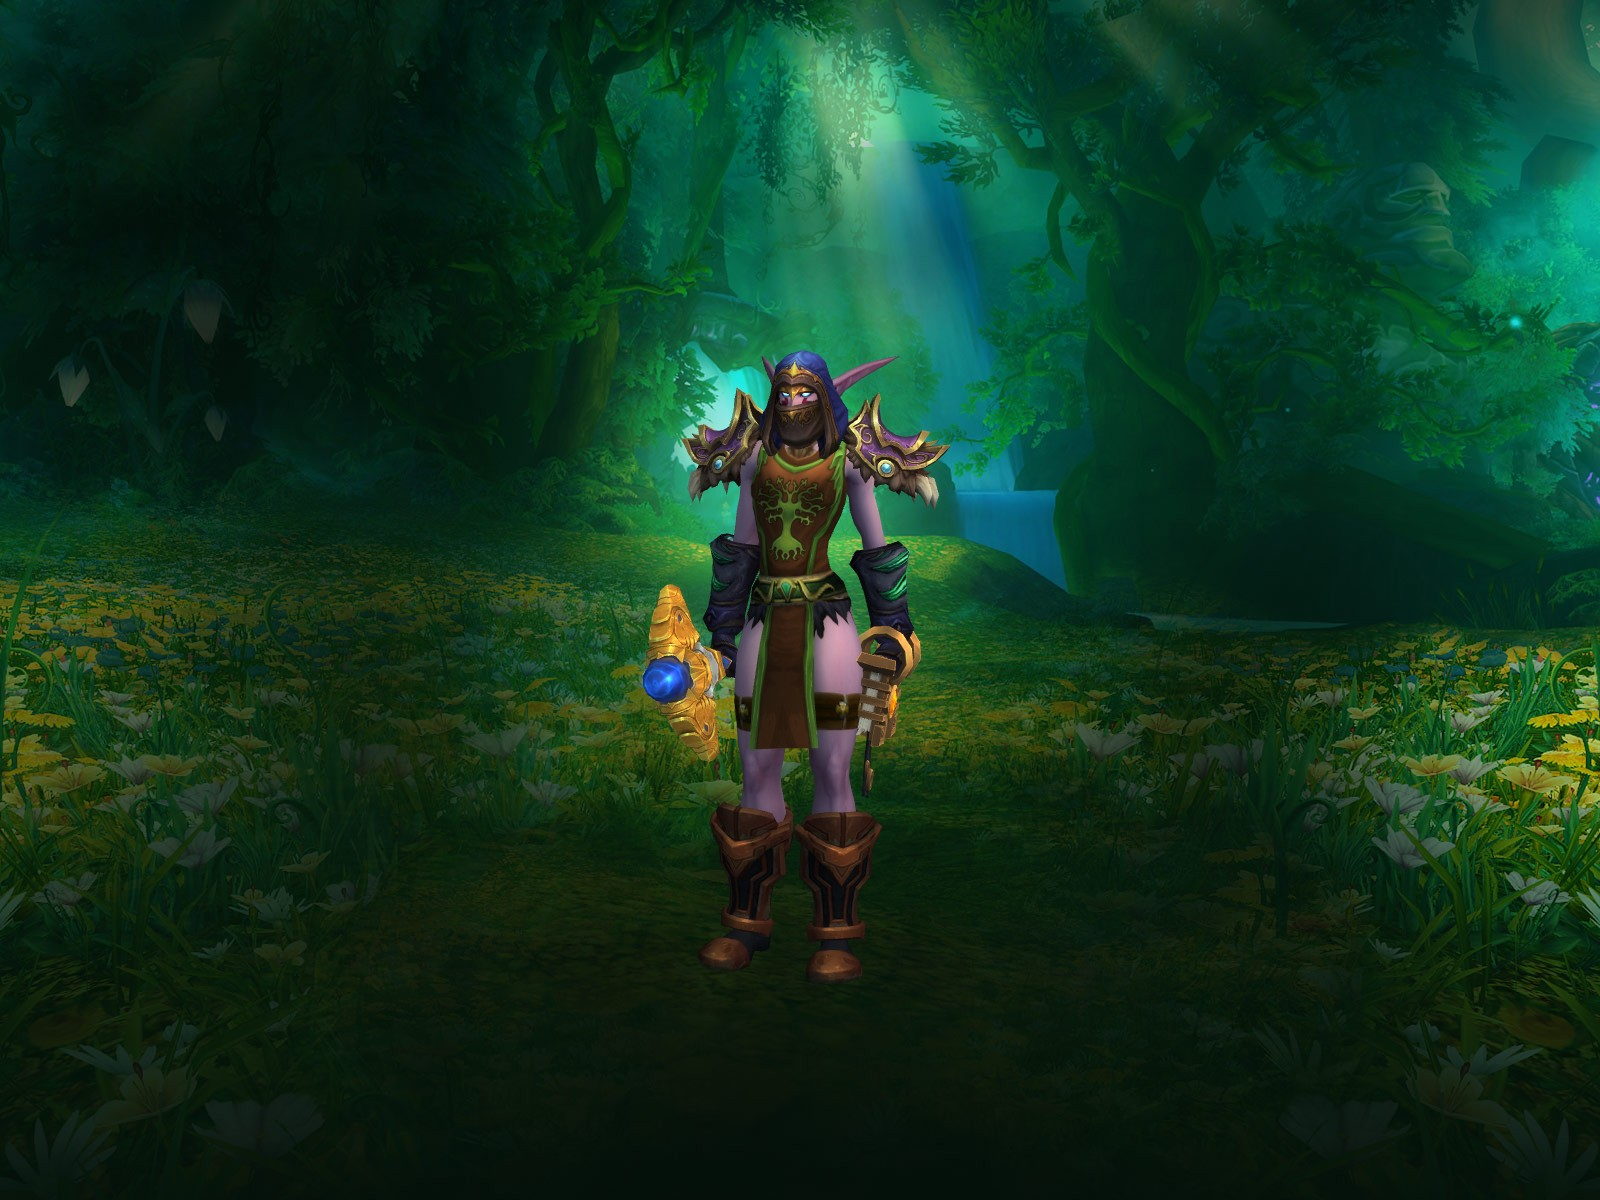 Running of of mana, and low healing? - Druid - World of Warcraft Forums